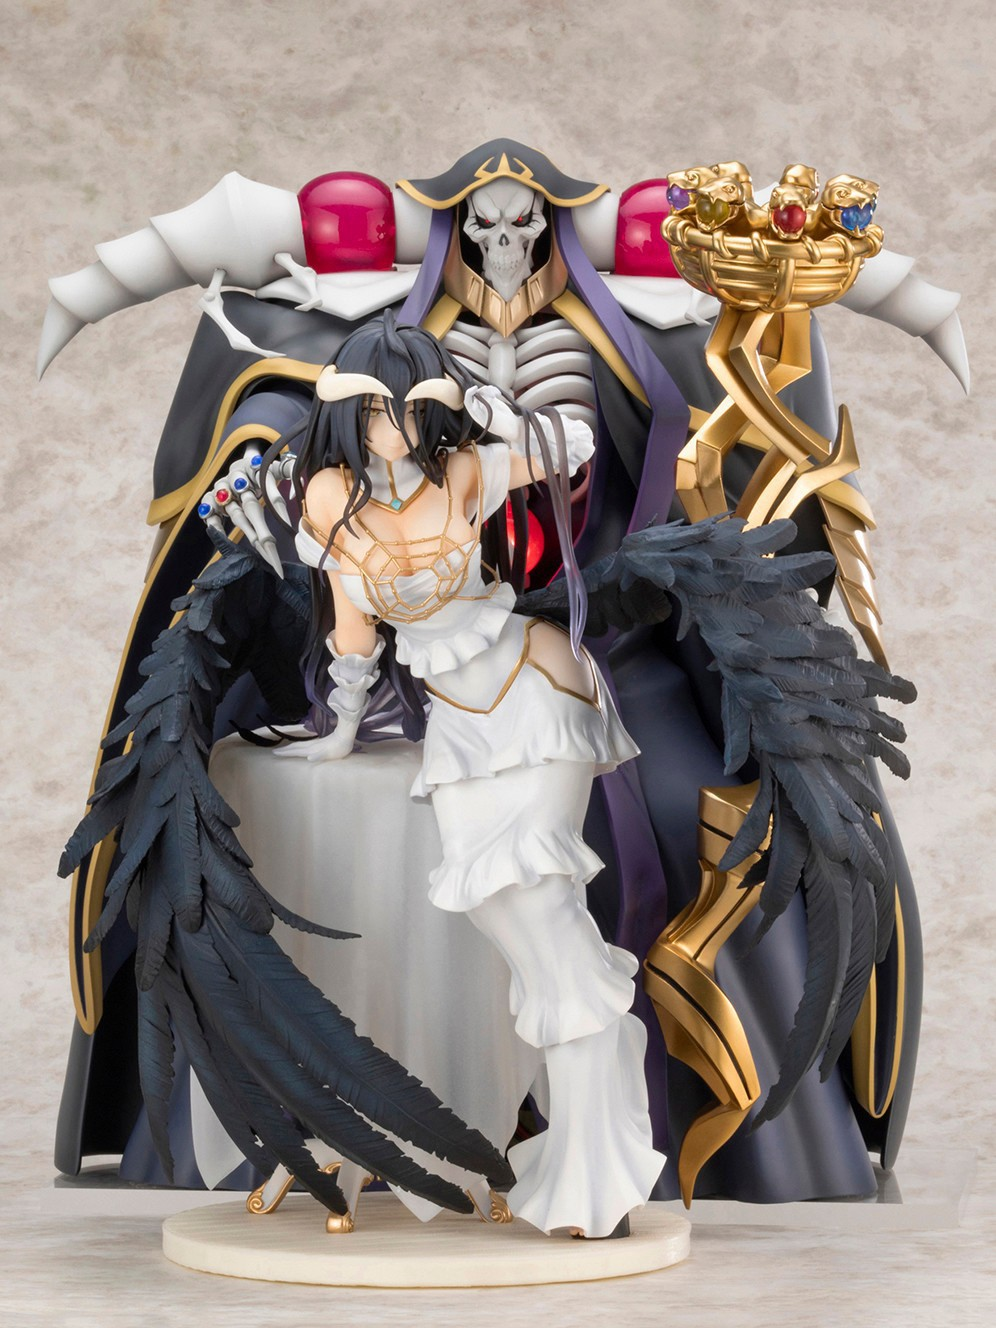 1:7 30cm Overlord Albedo Ainz Ooal Gown Action Figure Model Doll